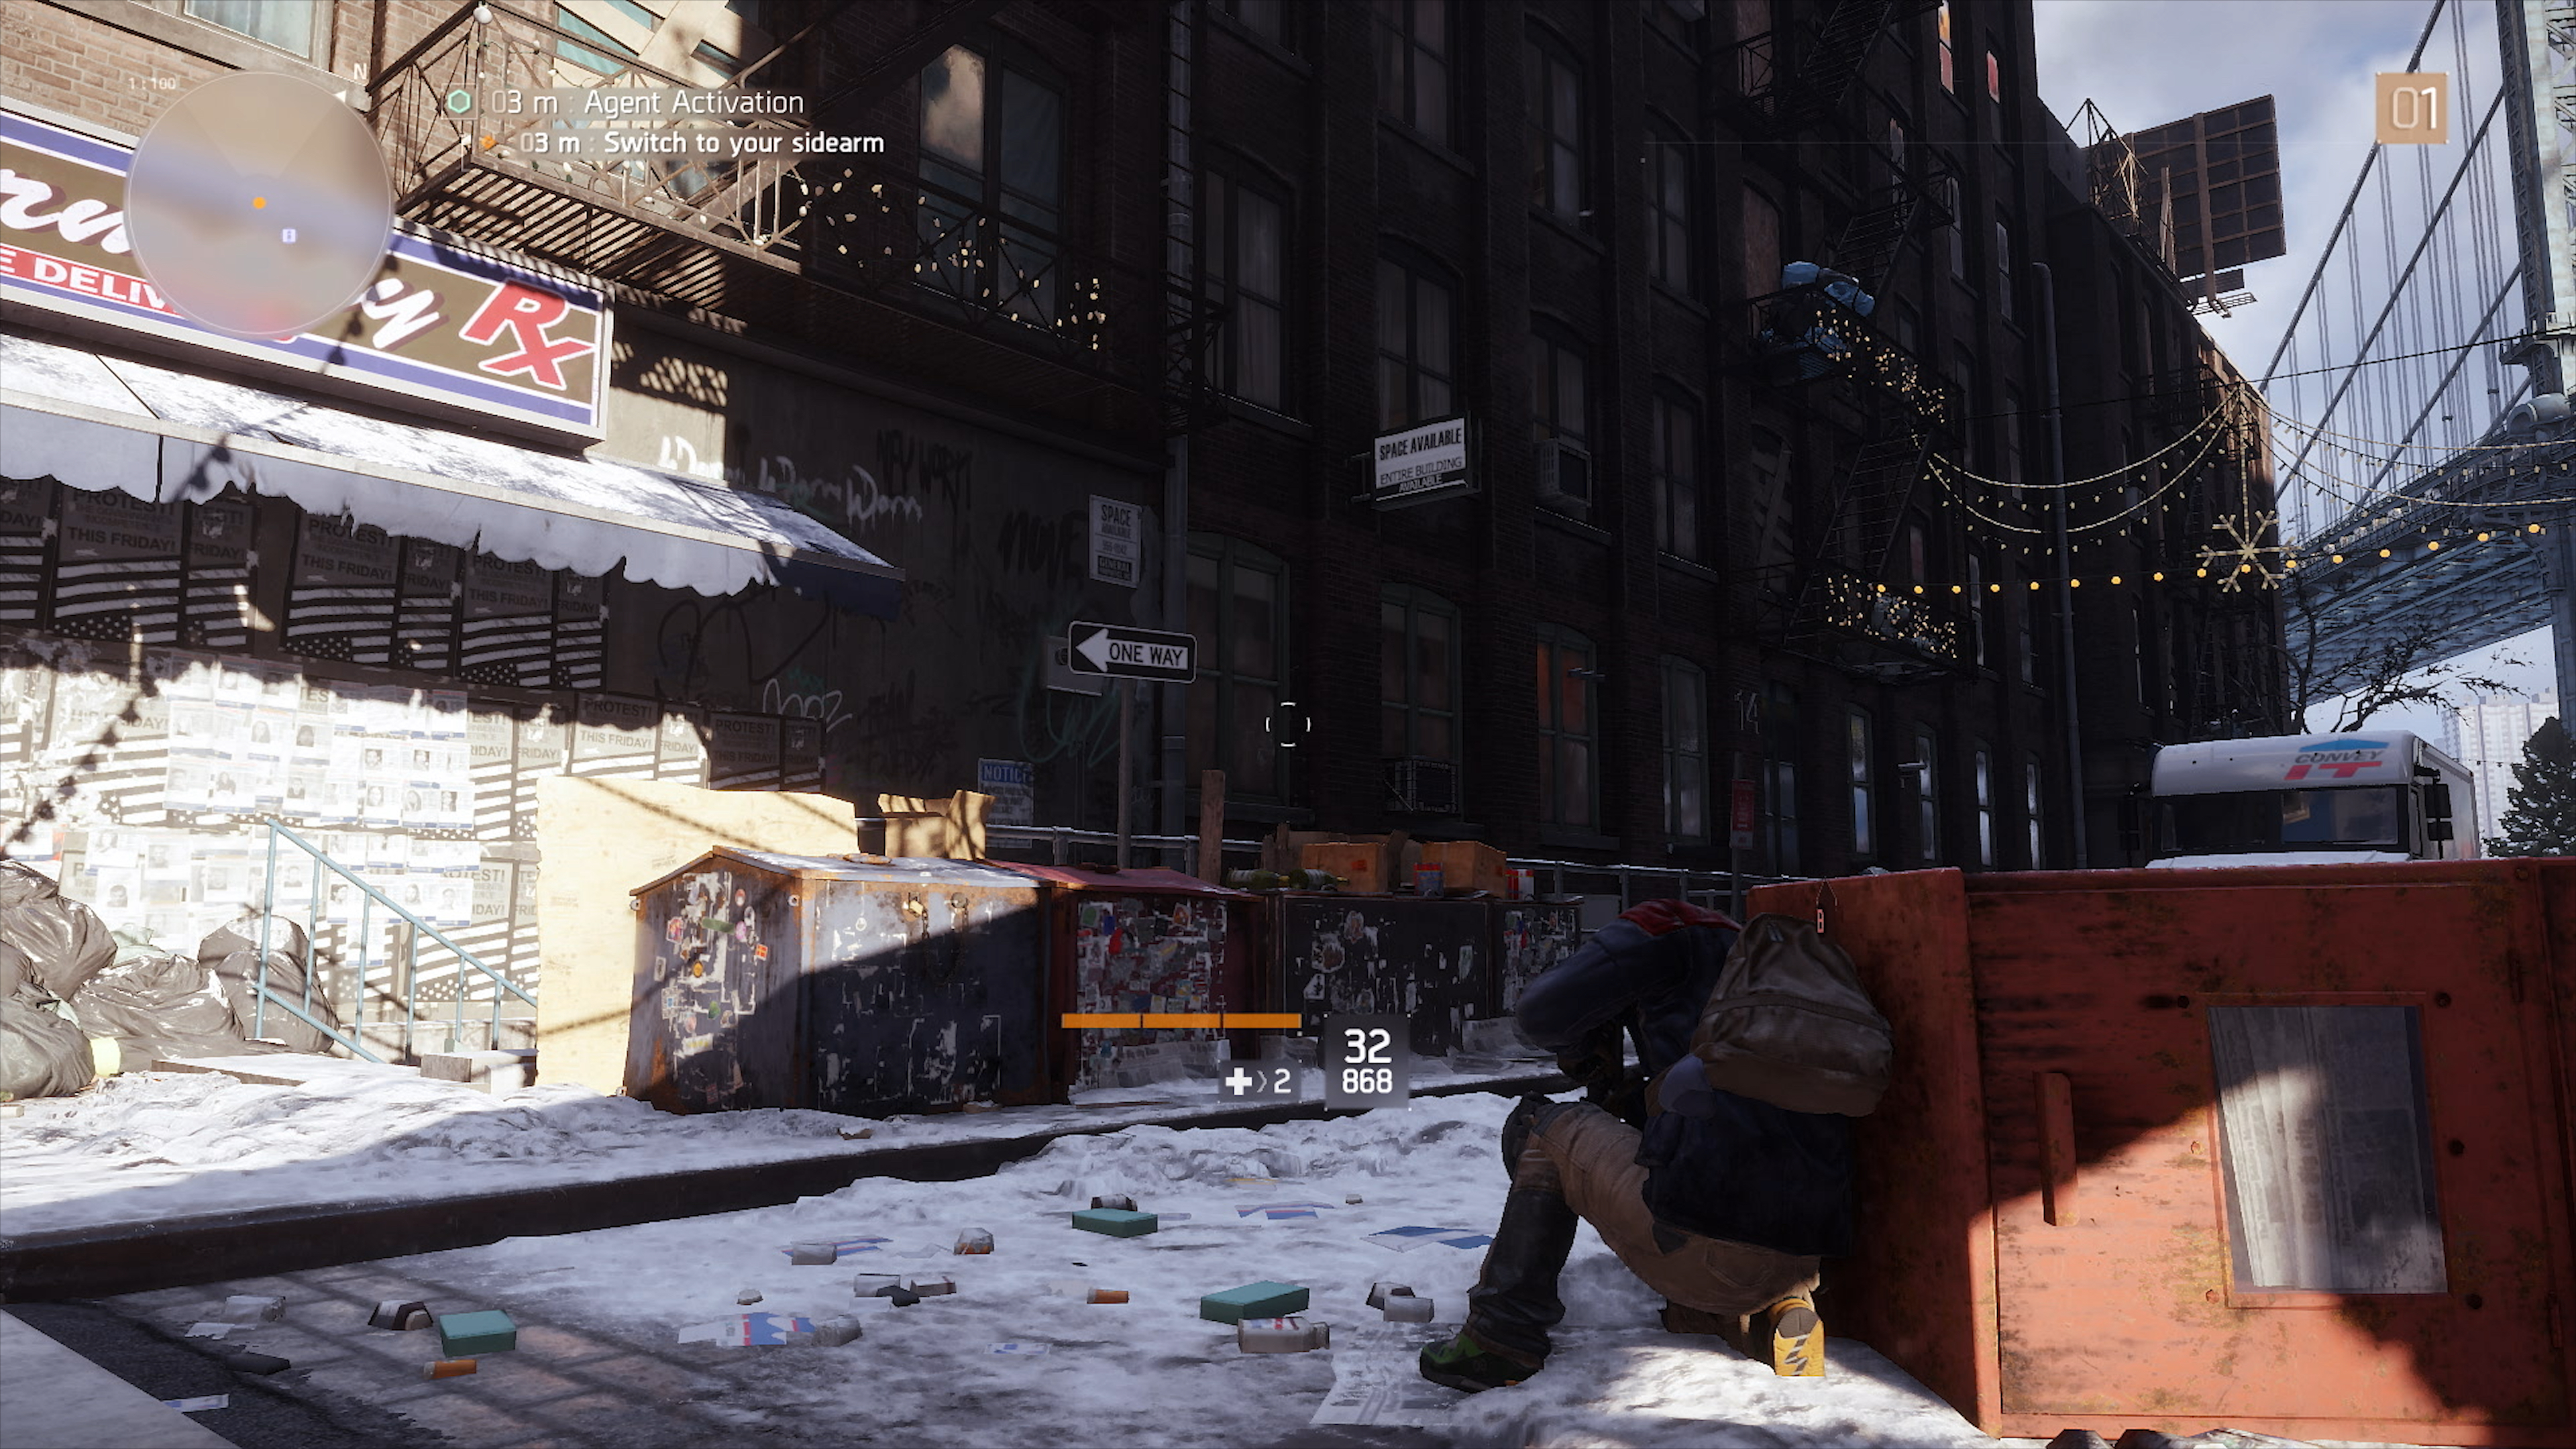 The Division Delivers Another Powerhouse Upgrade For Xbox One X 2 Way Switch Meaning Ps4 Pros Image Is Reconstructed To Give Impression Of A 4k Matching You Get Unique Stair Step Each Pixel